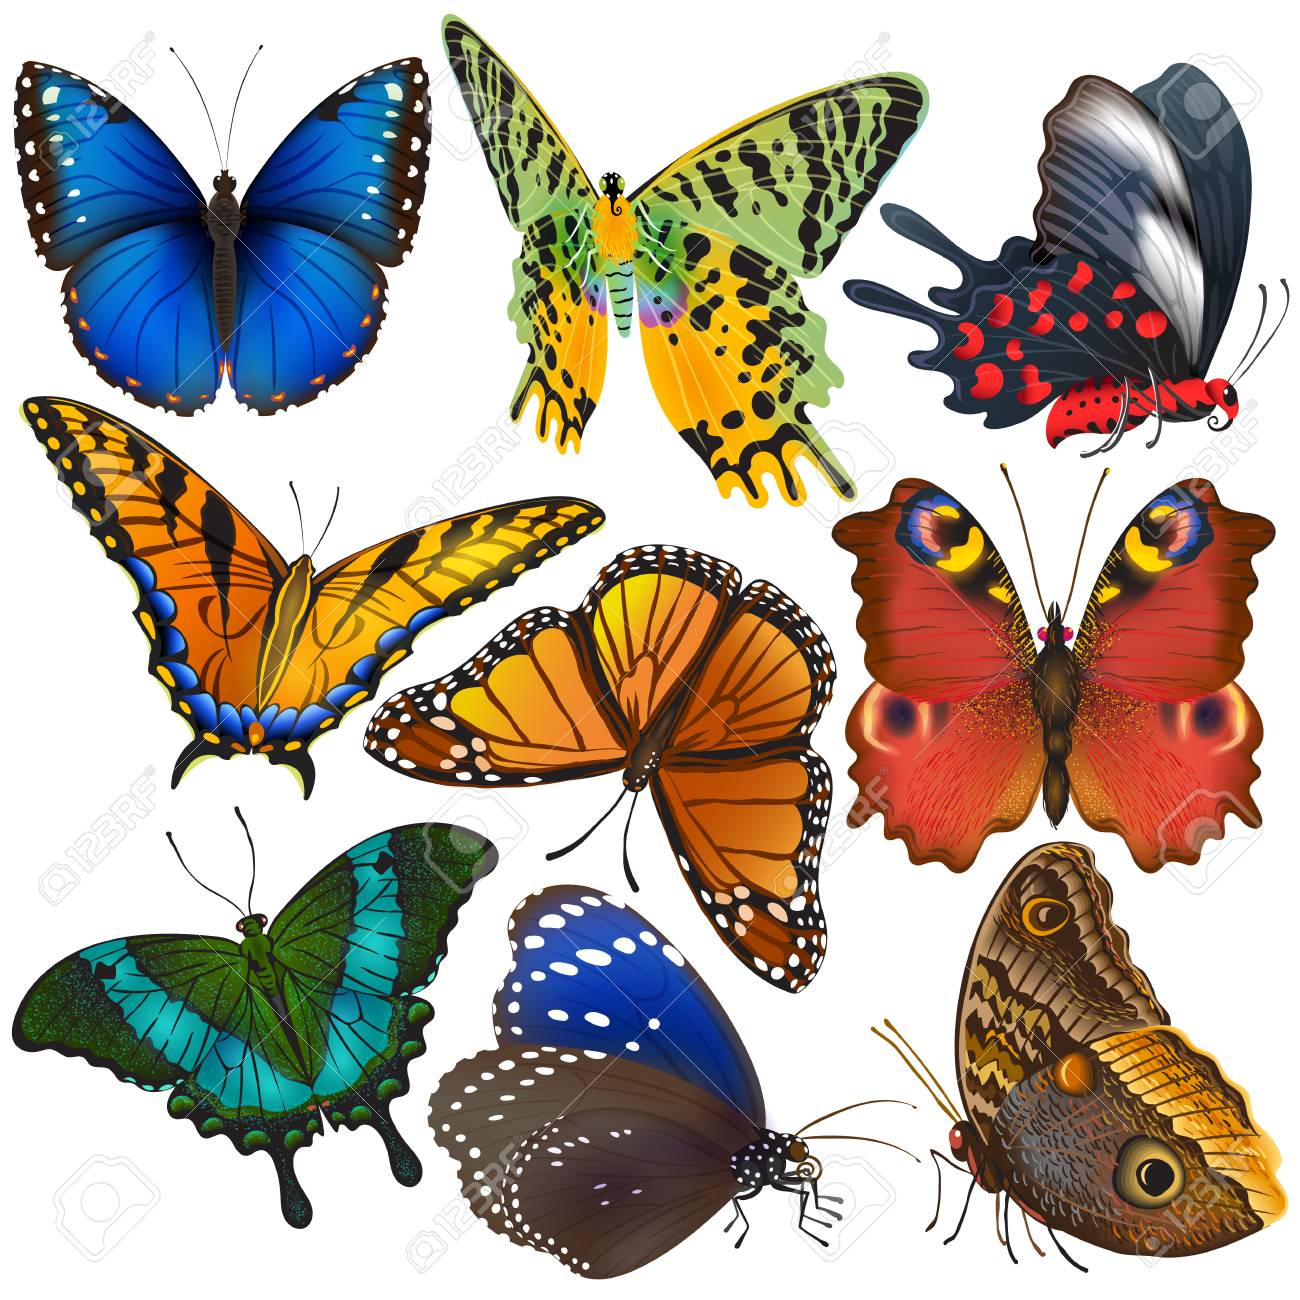 21dc1b78d4daa8 Butterfly vector colorful insect flying for decoration and beautiful  butterflies wings fly in spring illustration set